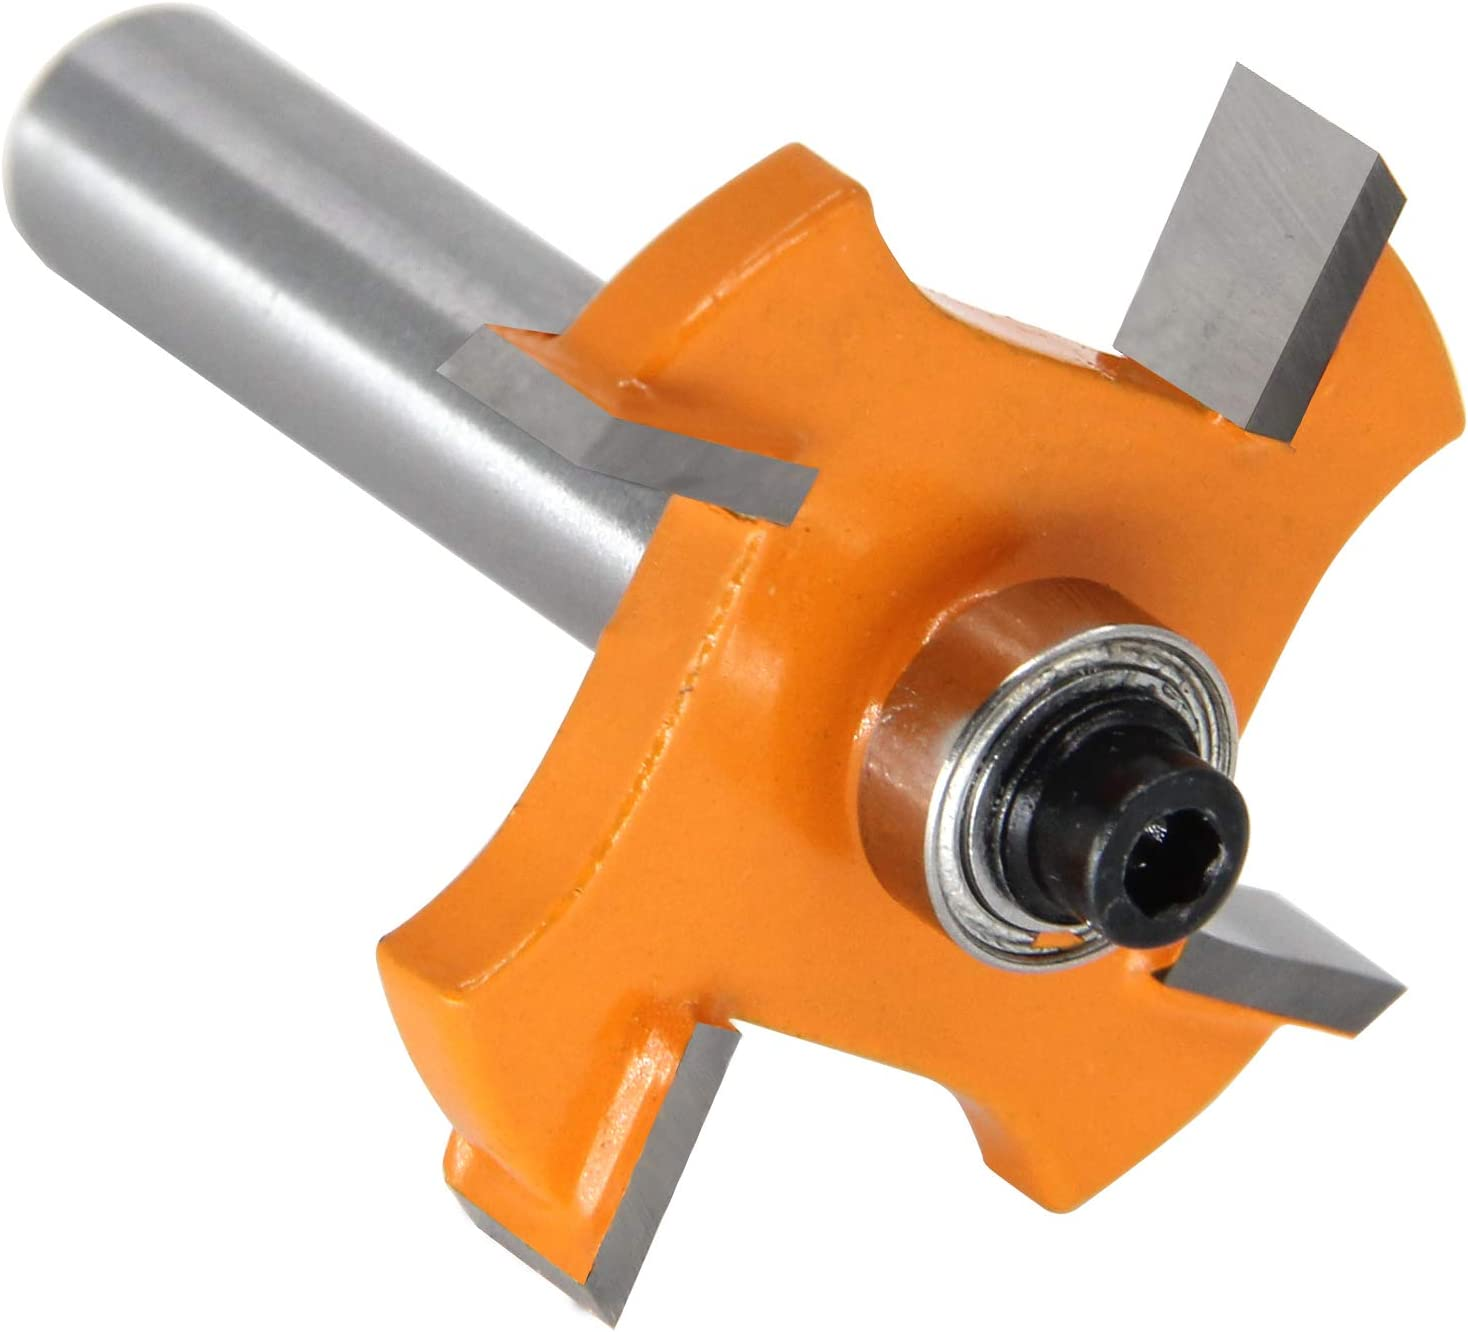 8mm Shank Slotting Cutter Router Purchase Bit Inch Max 41% OFF Depth 4 1 2 Cutting